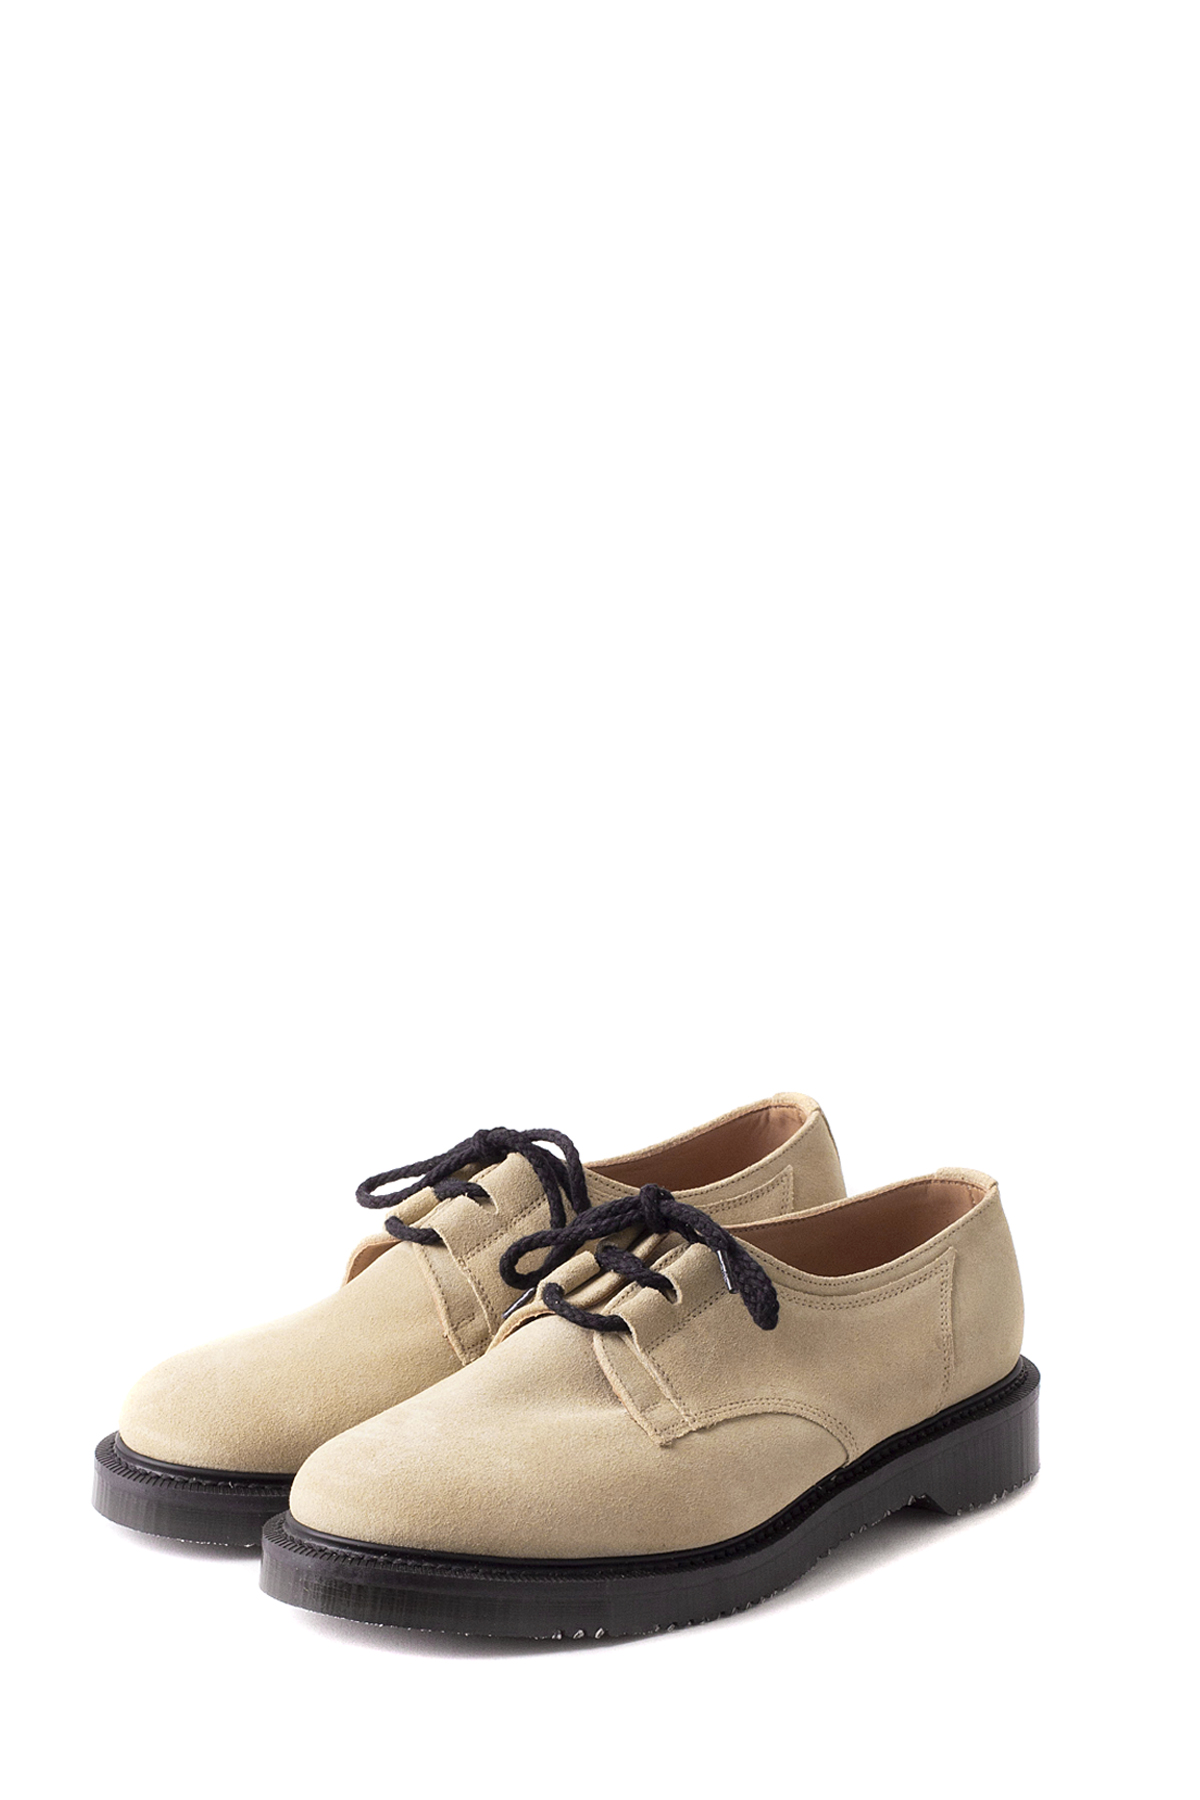 GEORGE COX : Ghillie Gibson (Sand Suede)